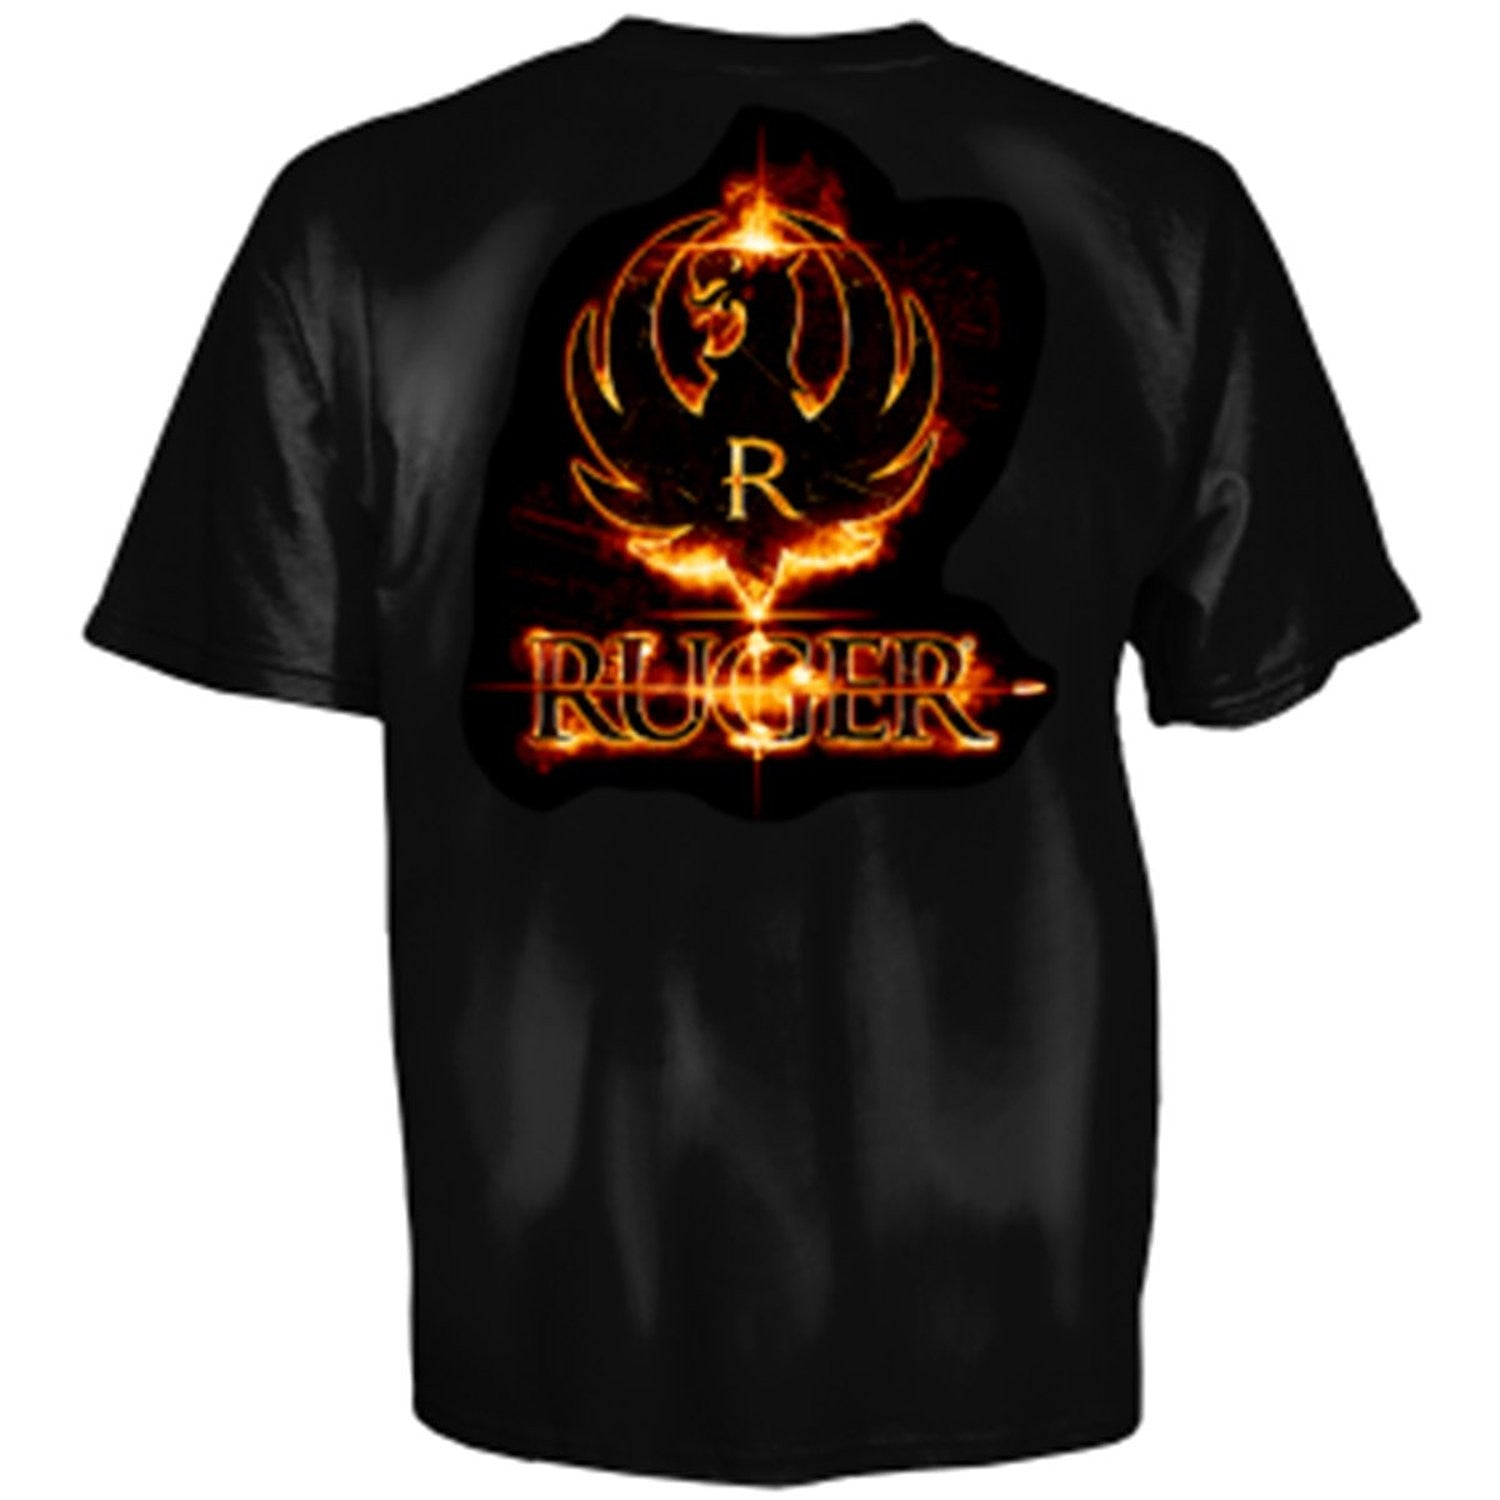 Ruger Laser Point Adult SS T-shirt by Club Red - Black - Back40Trading2